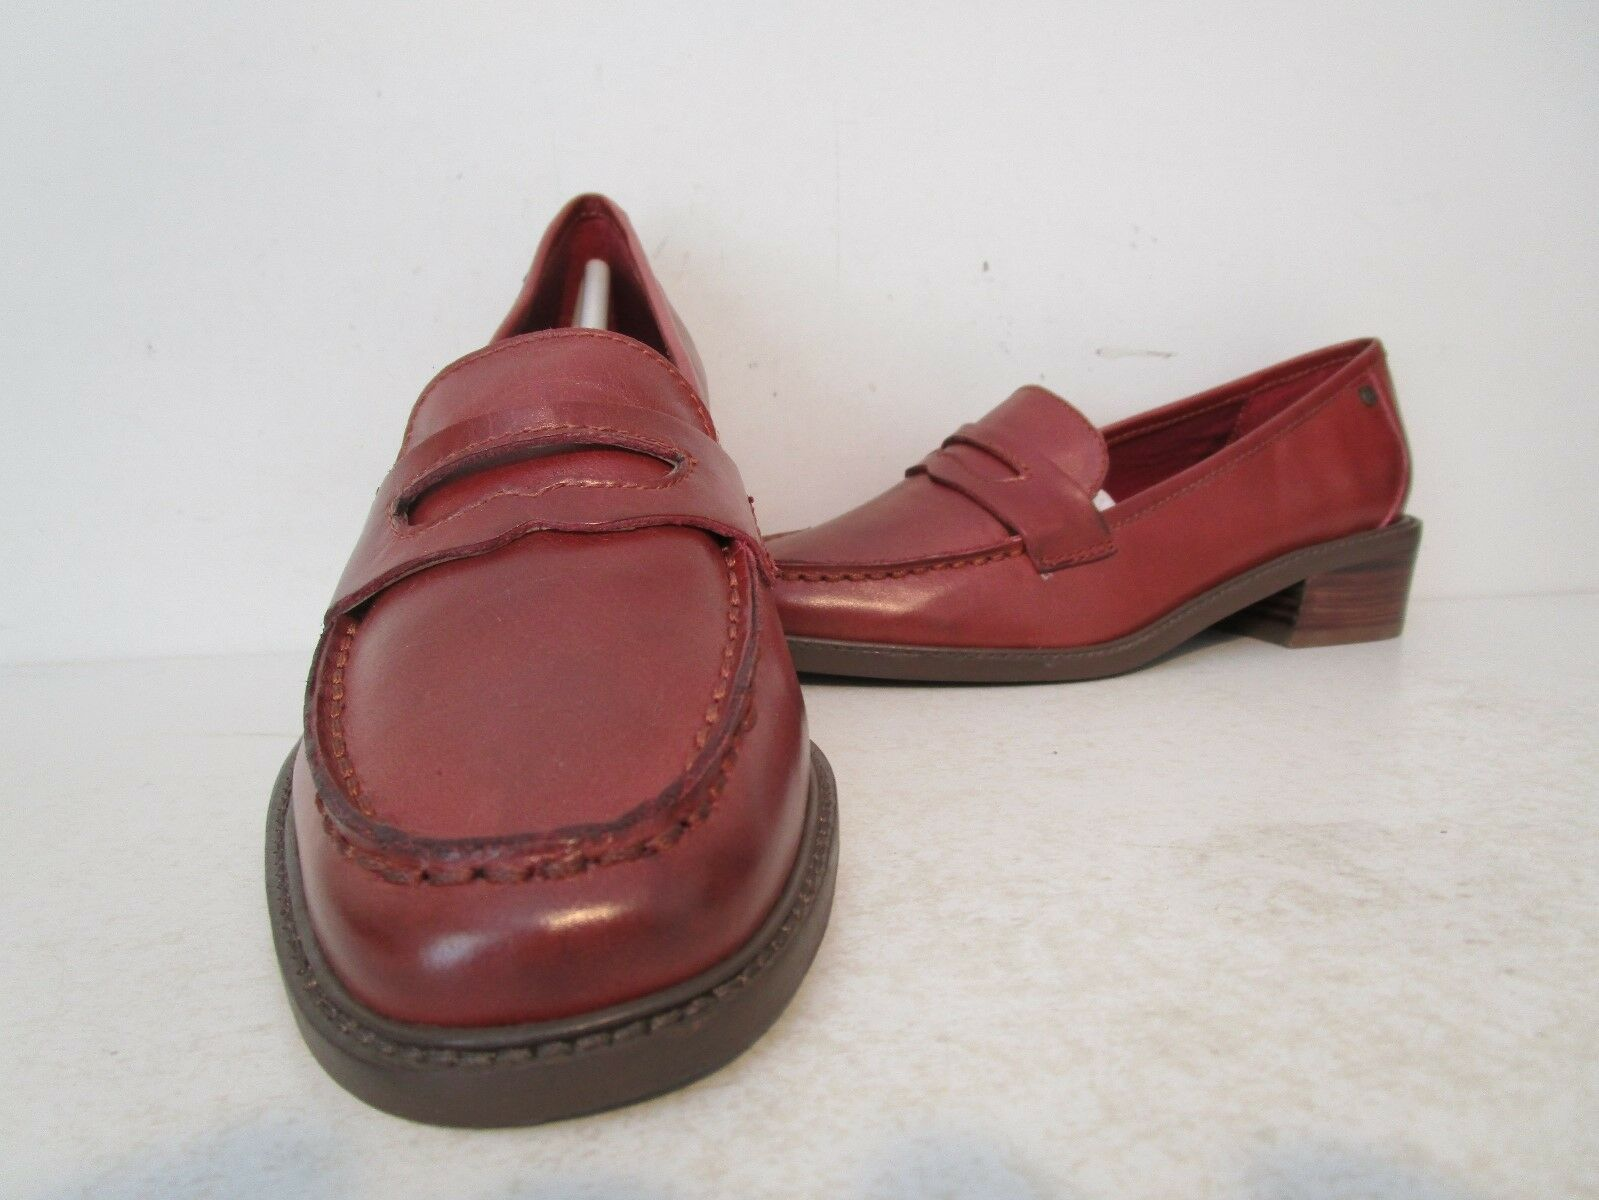 Bass femmes Leather 1.5  Heeled Penny Loafer Slip-On chaussures rougedish Taille 6 M